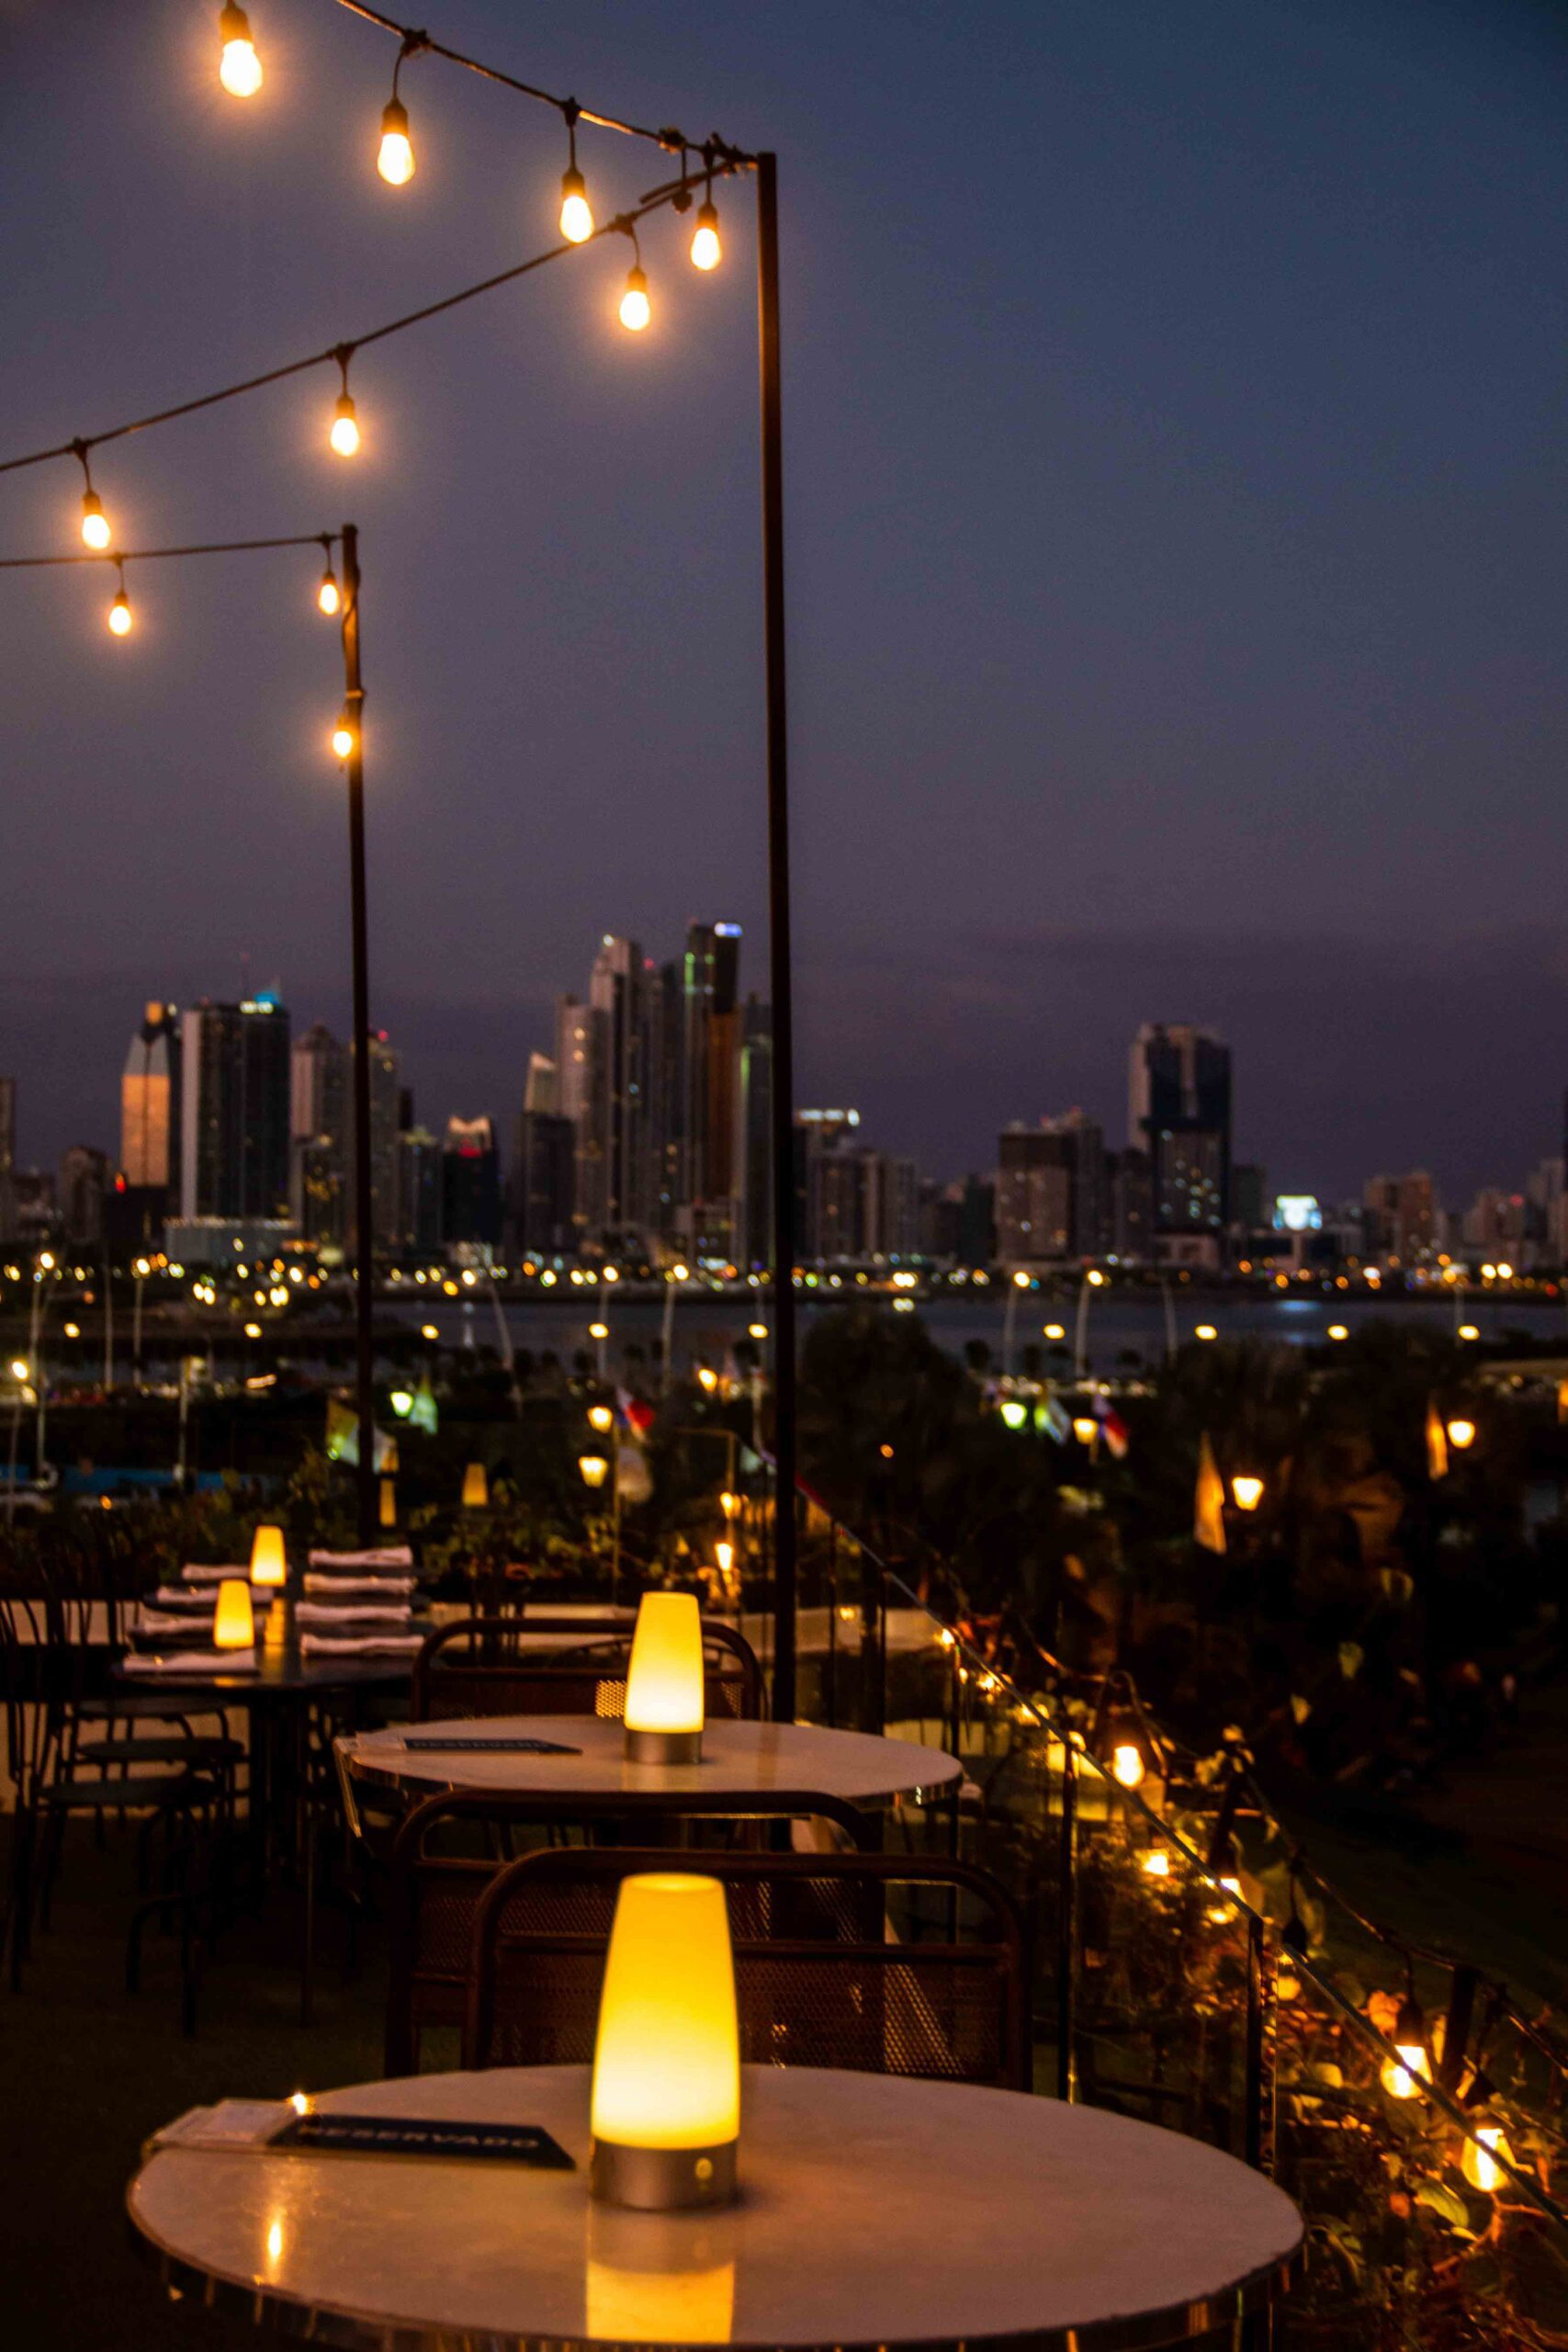 Rooftop bar Lazotea at night in Panama City